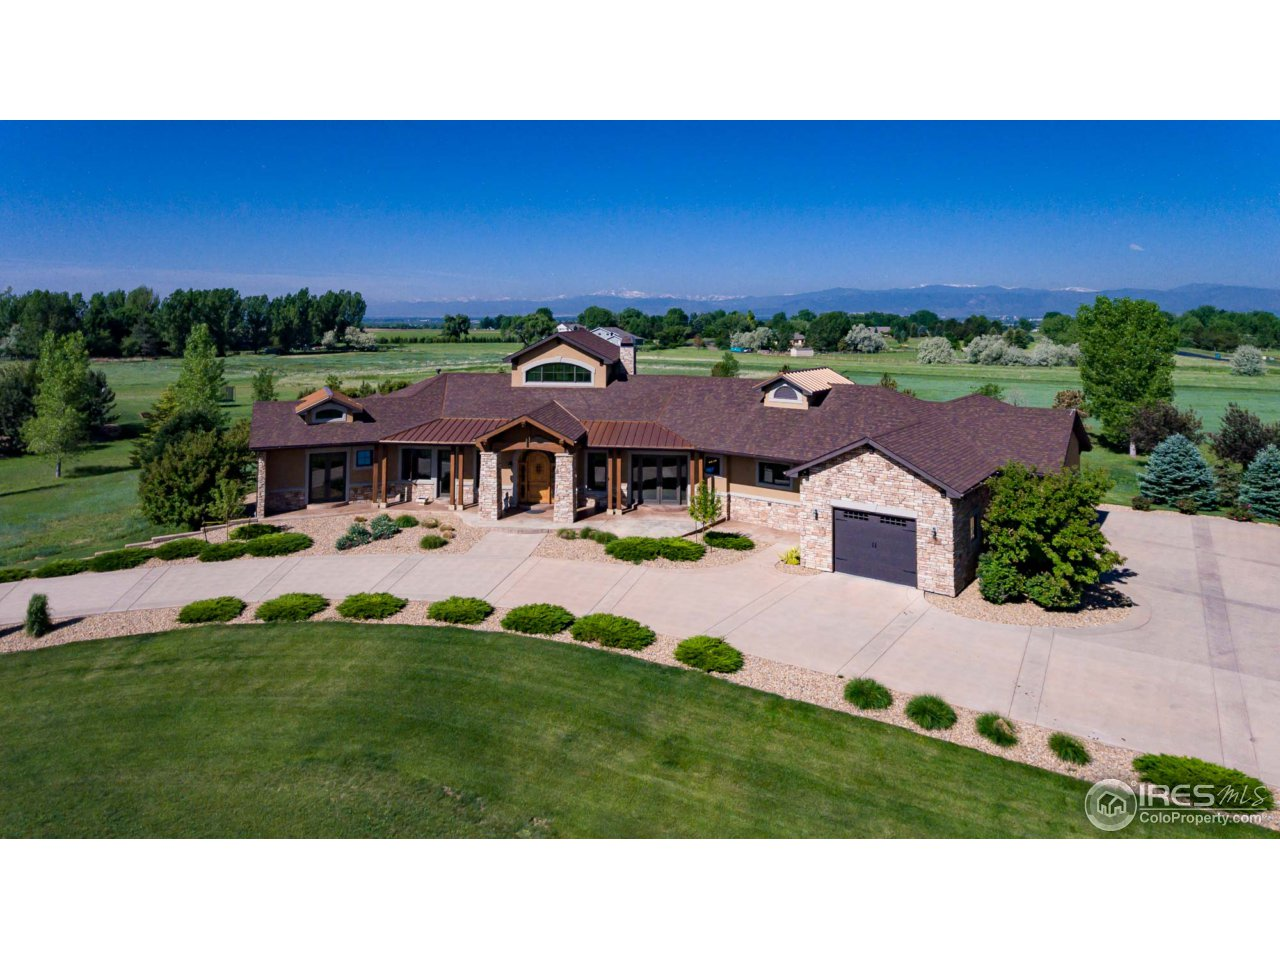 915 Riparian Way, Fort Collins, CO 80524